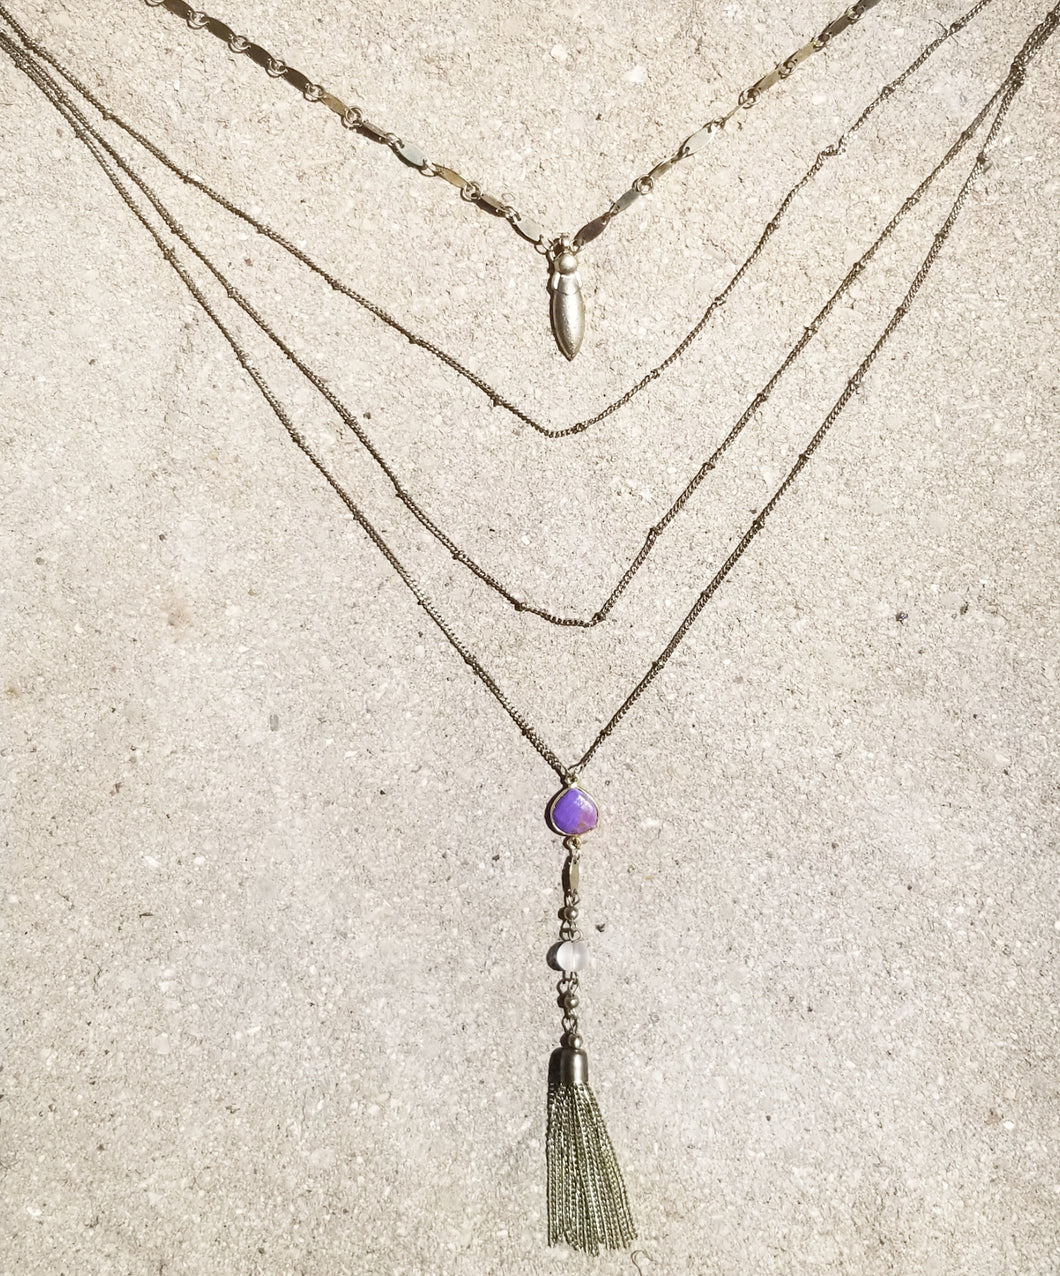 The Purple Boho Necklace